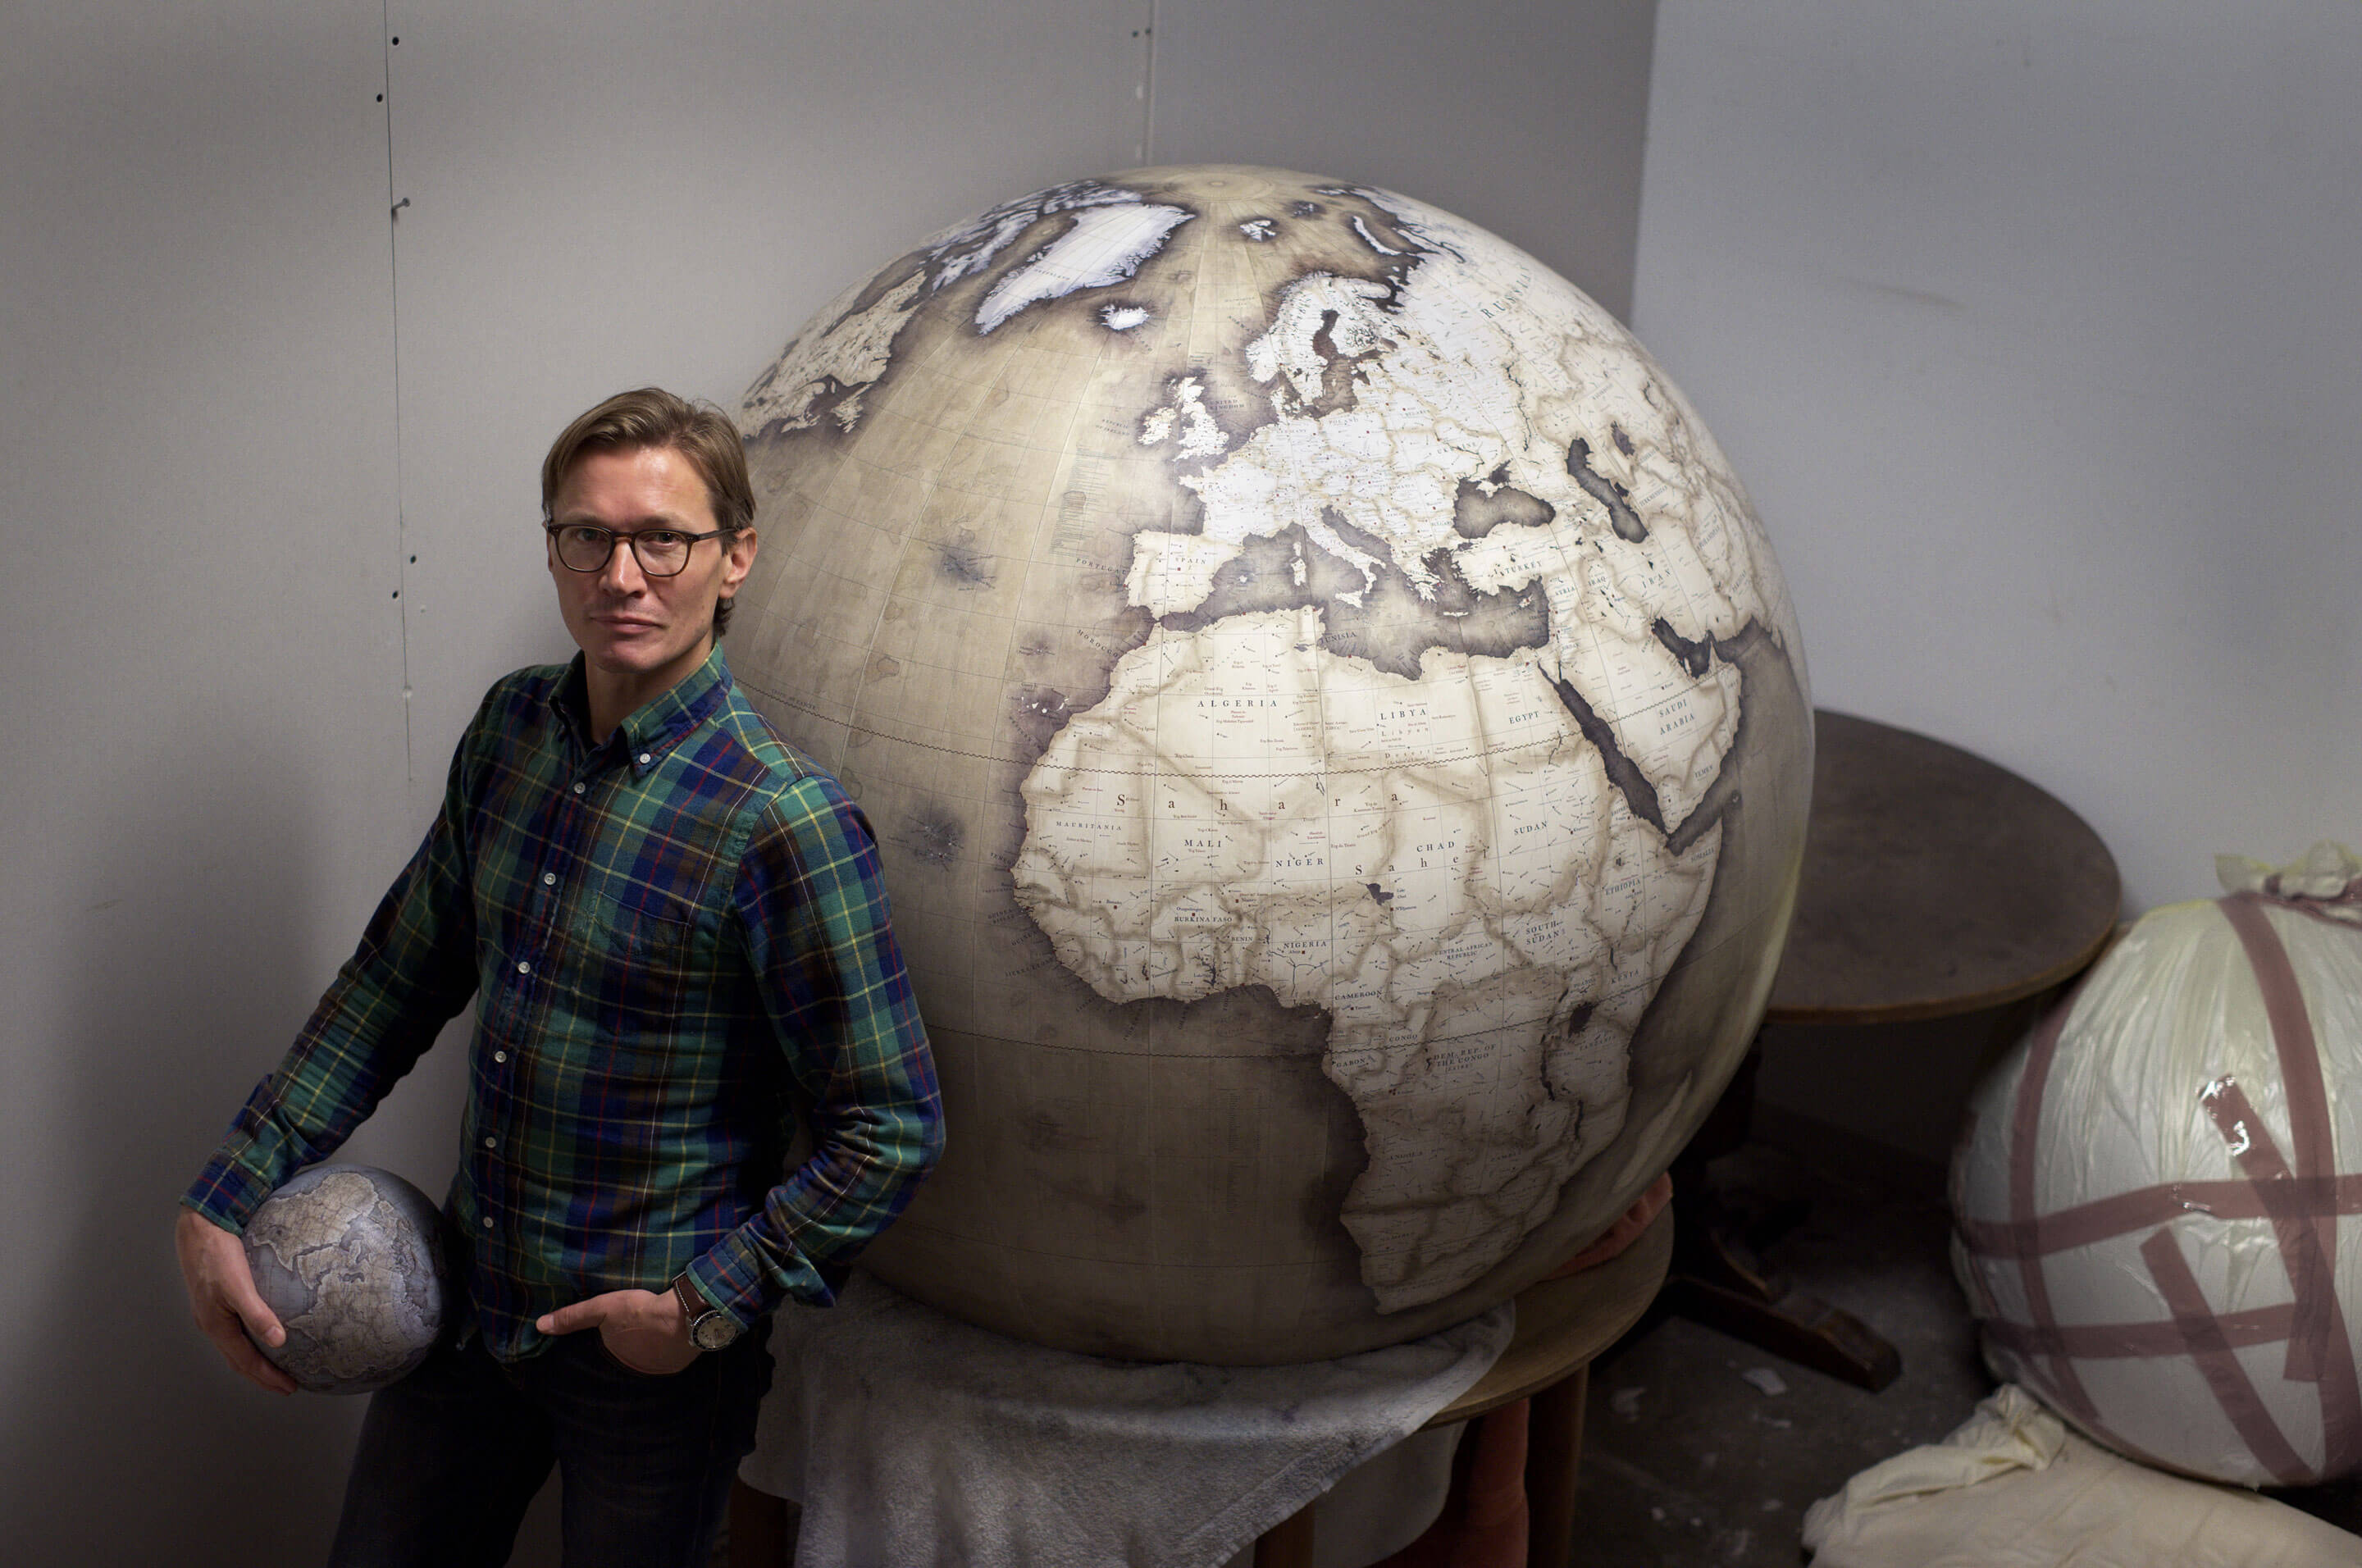 Tack-Studio-Creative-Agency-Peter-Bellerby-and-Co-Globemakers